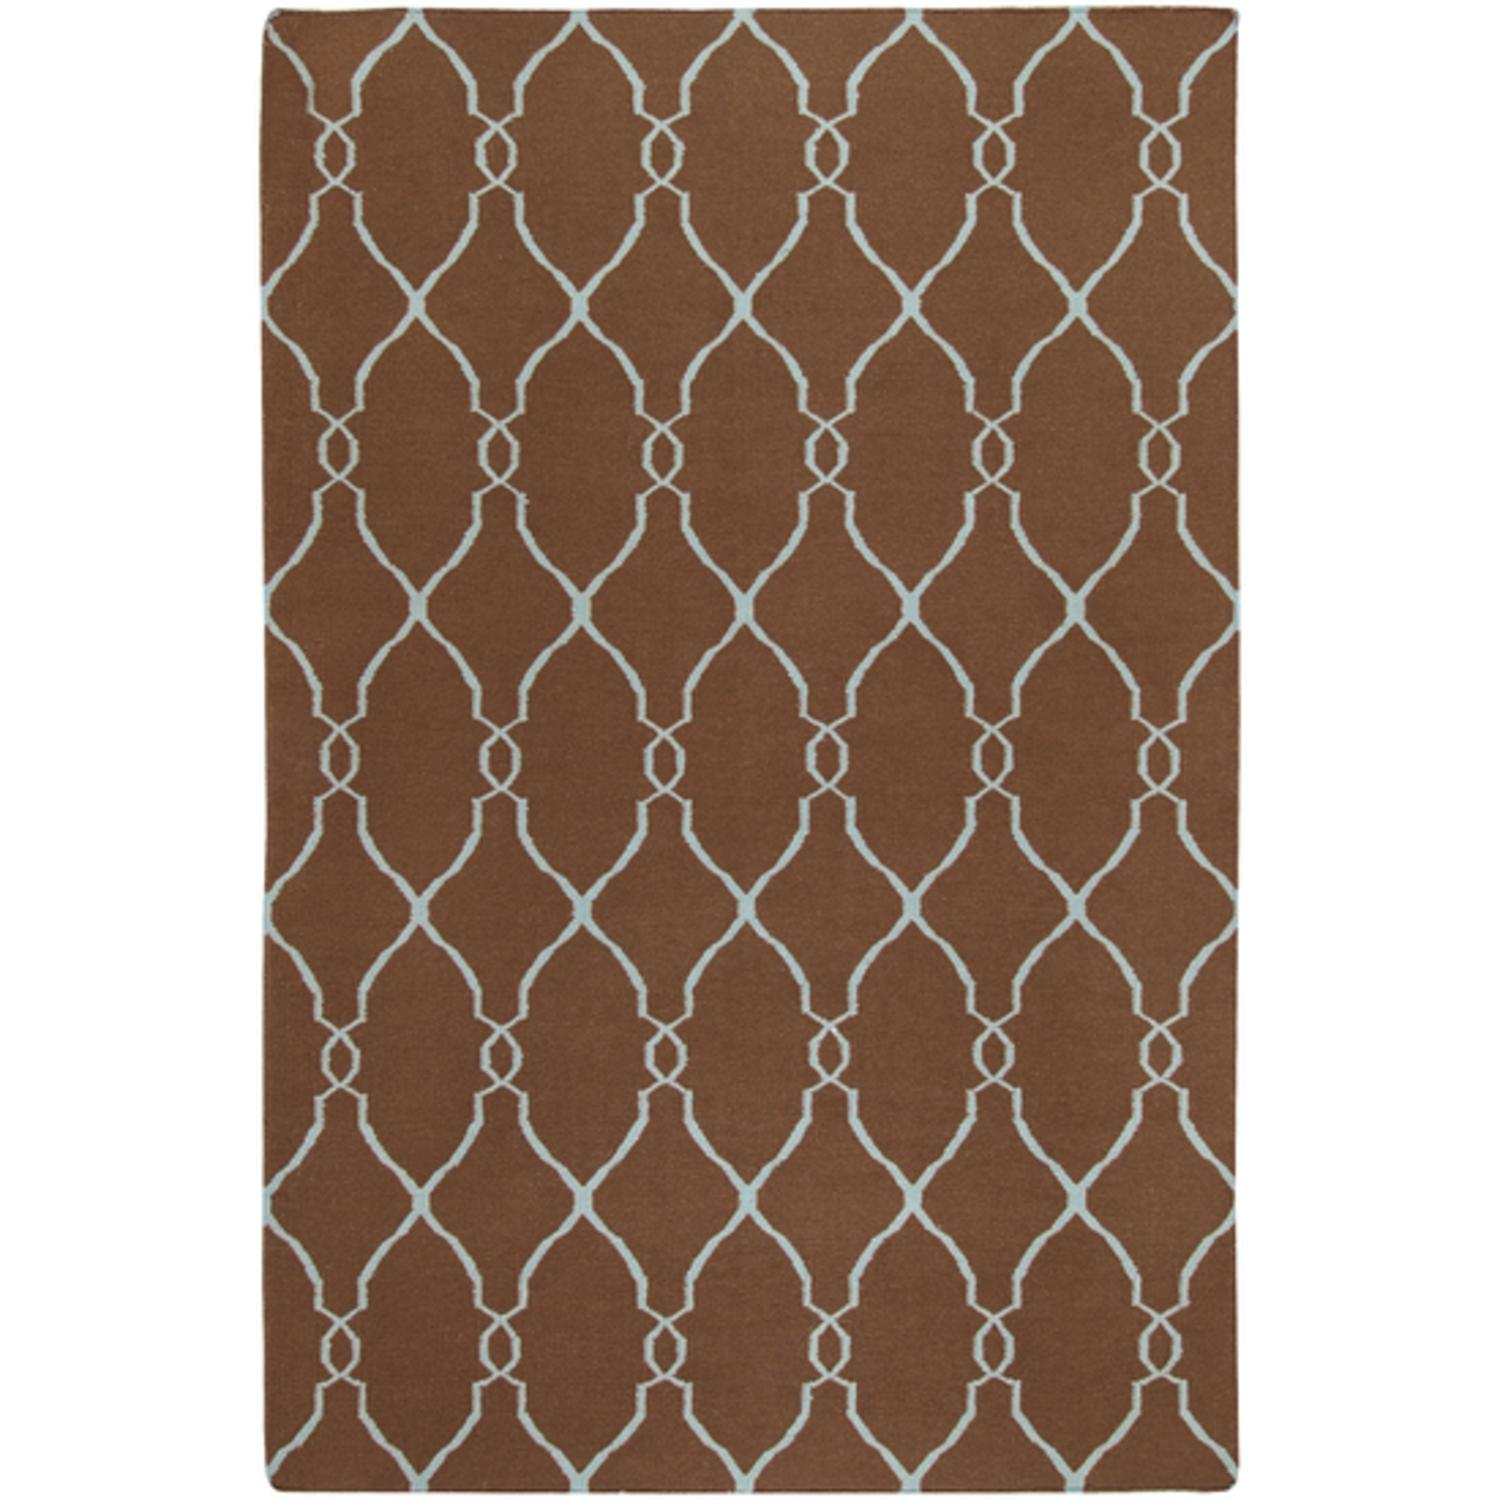 5' x 8' Robin's Egg Mocha Brown and Foggy Blue Hand Woven Wool Area Throw Rug